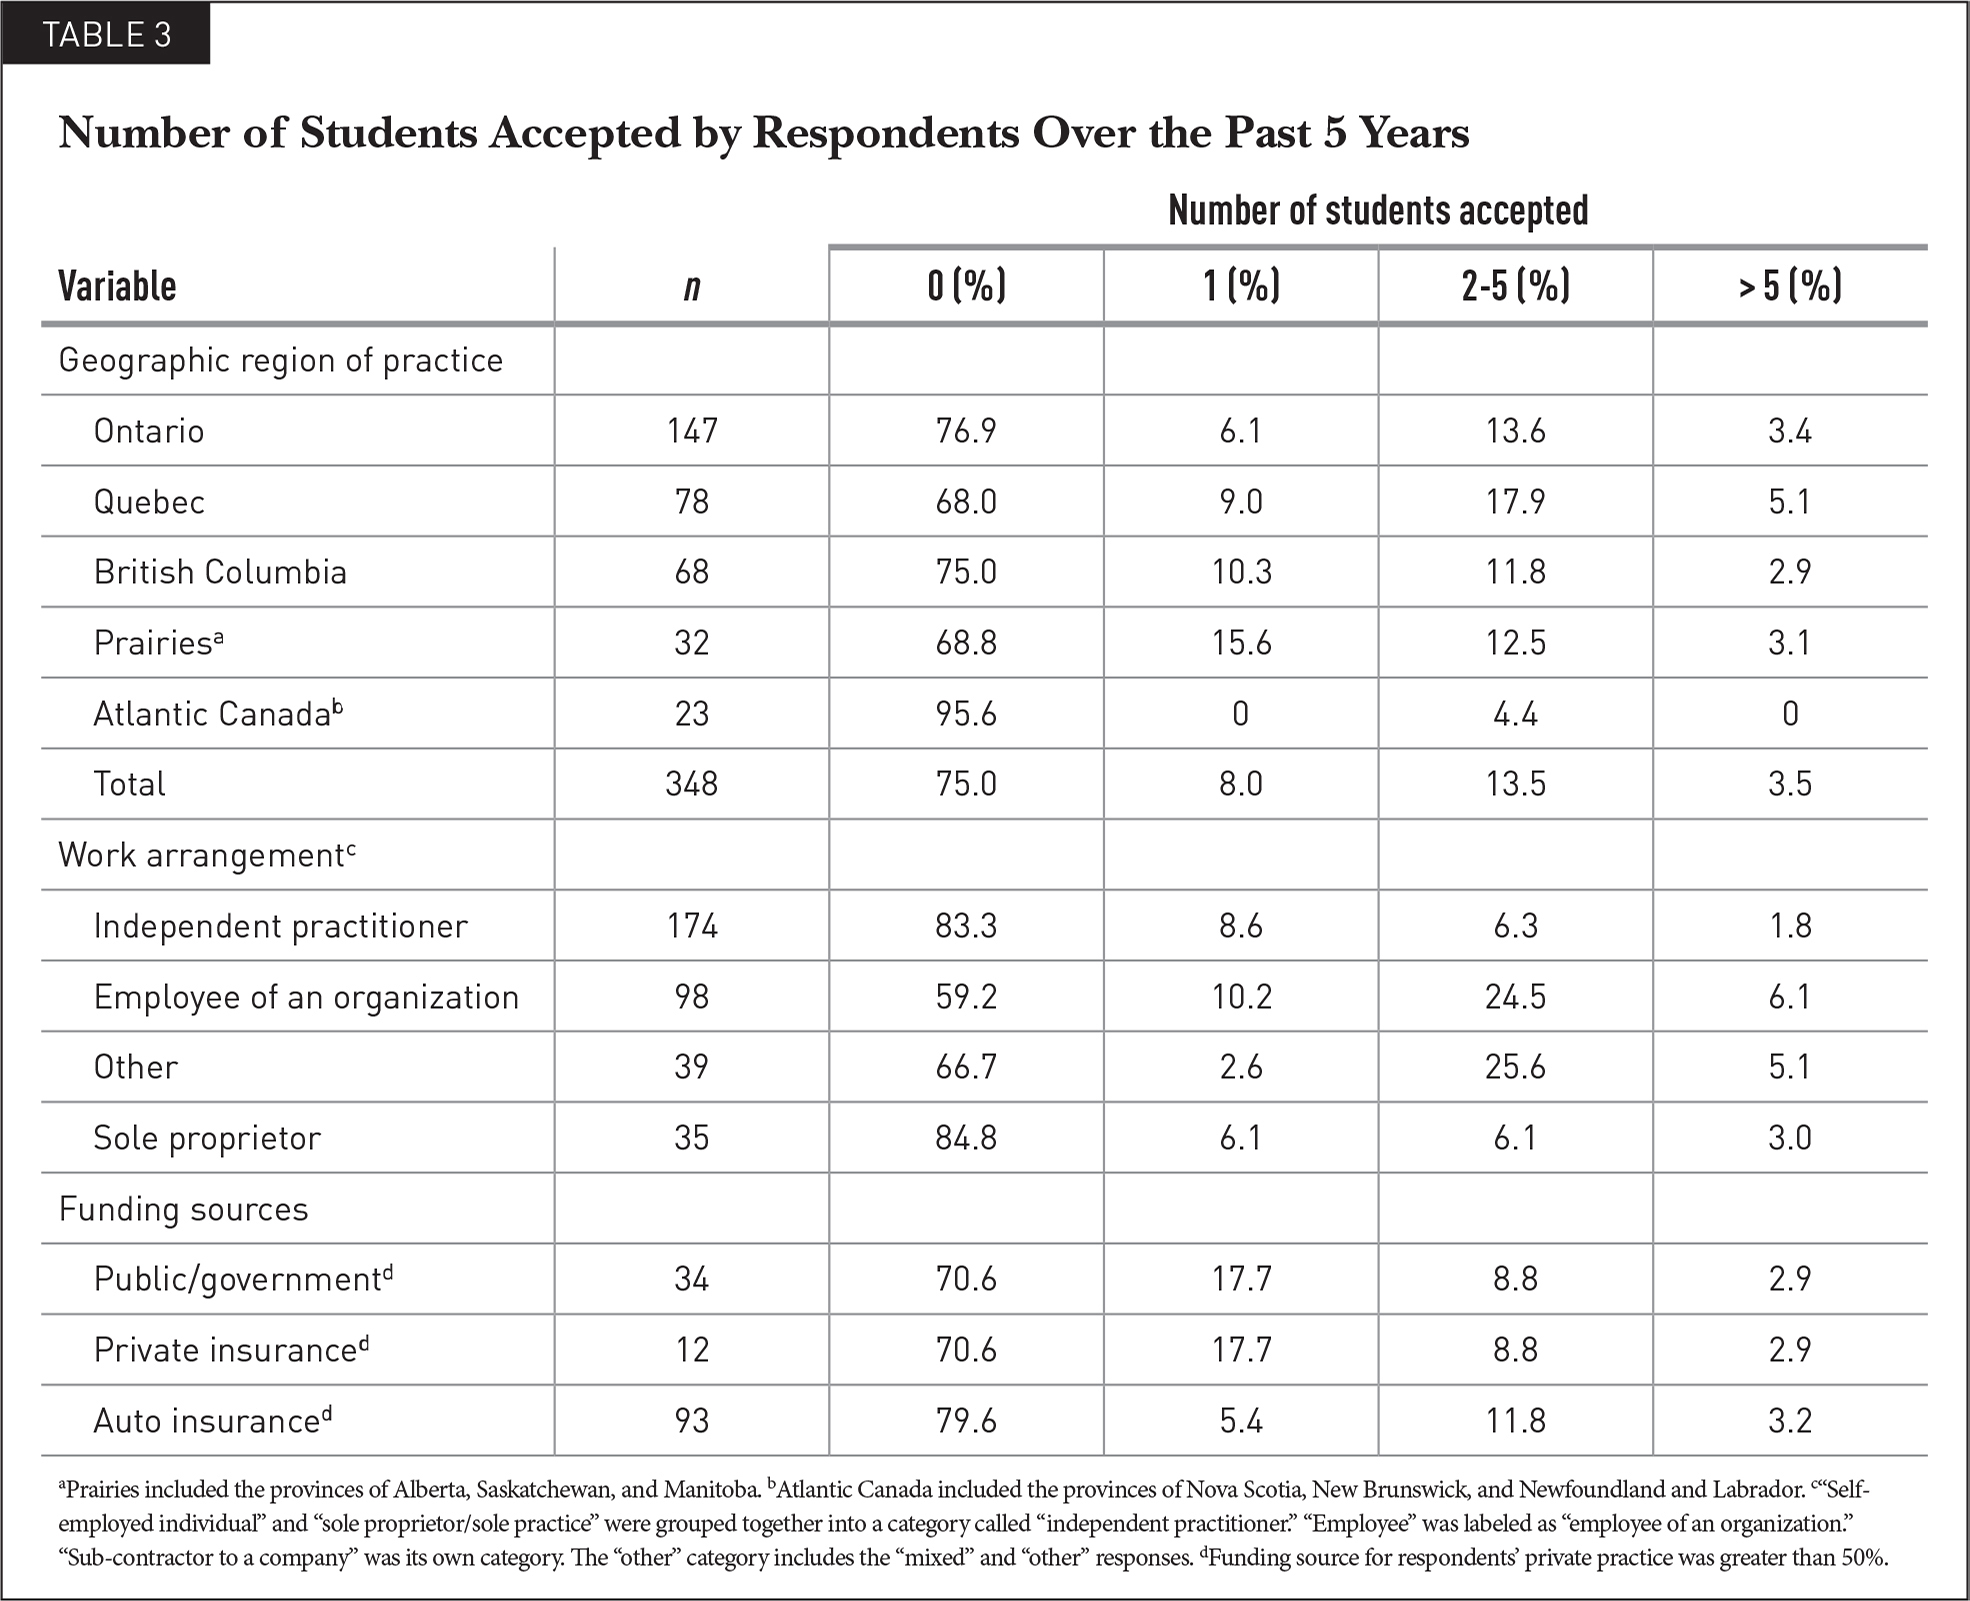 Number of Students Accepted by Respondents Over the Past 5 Years